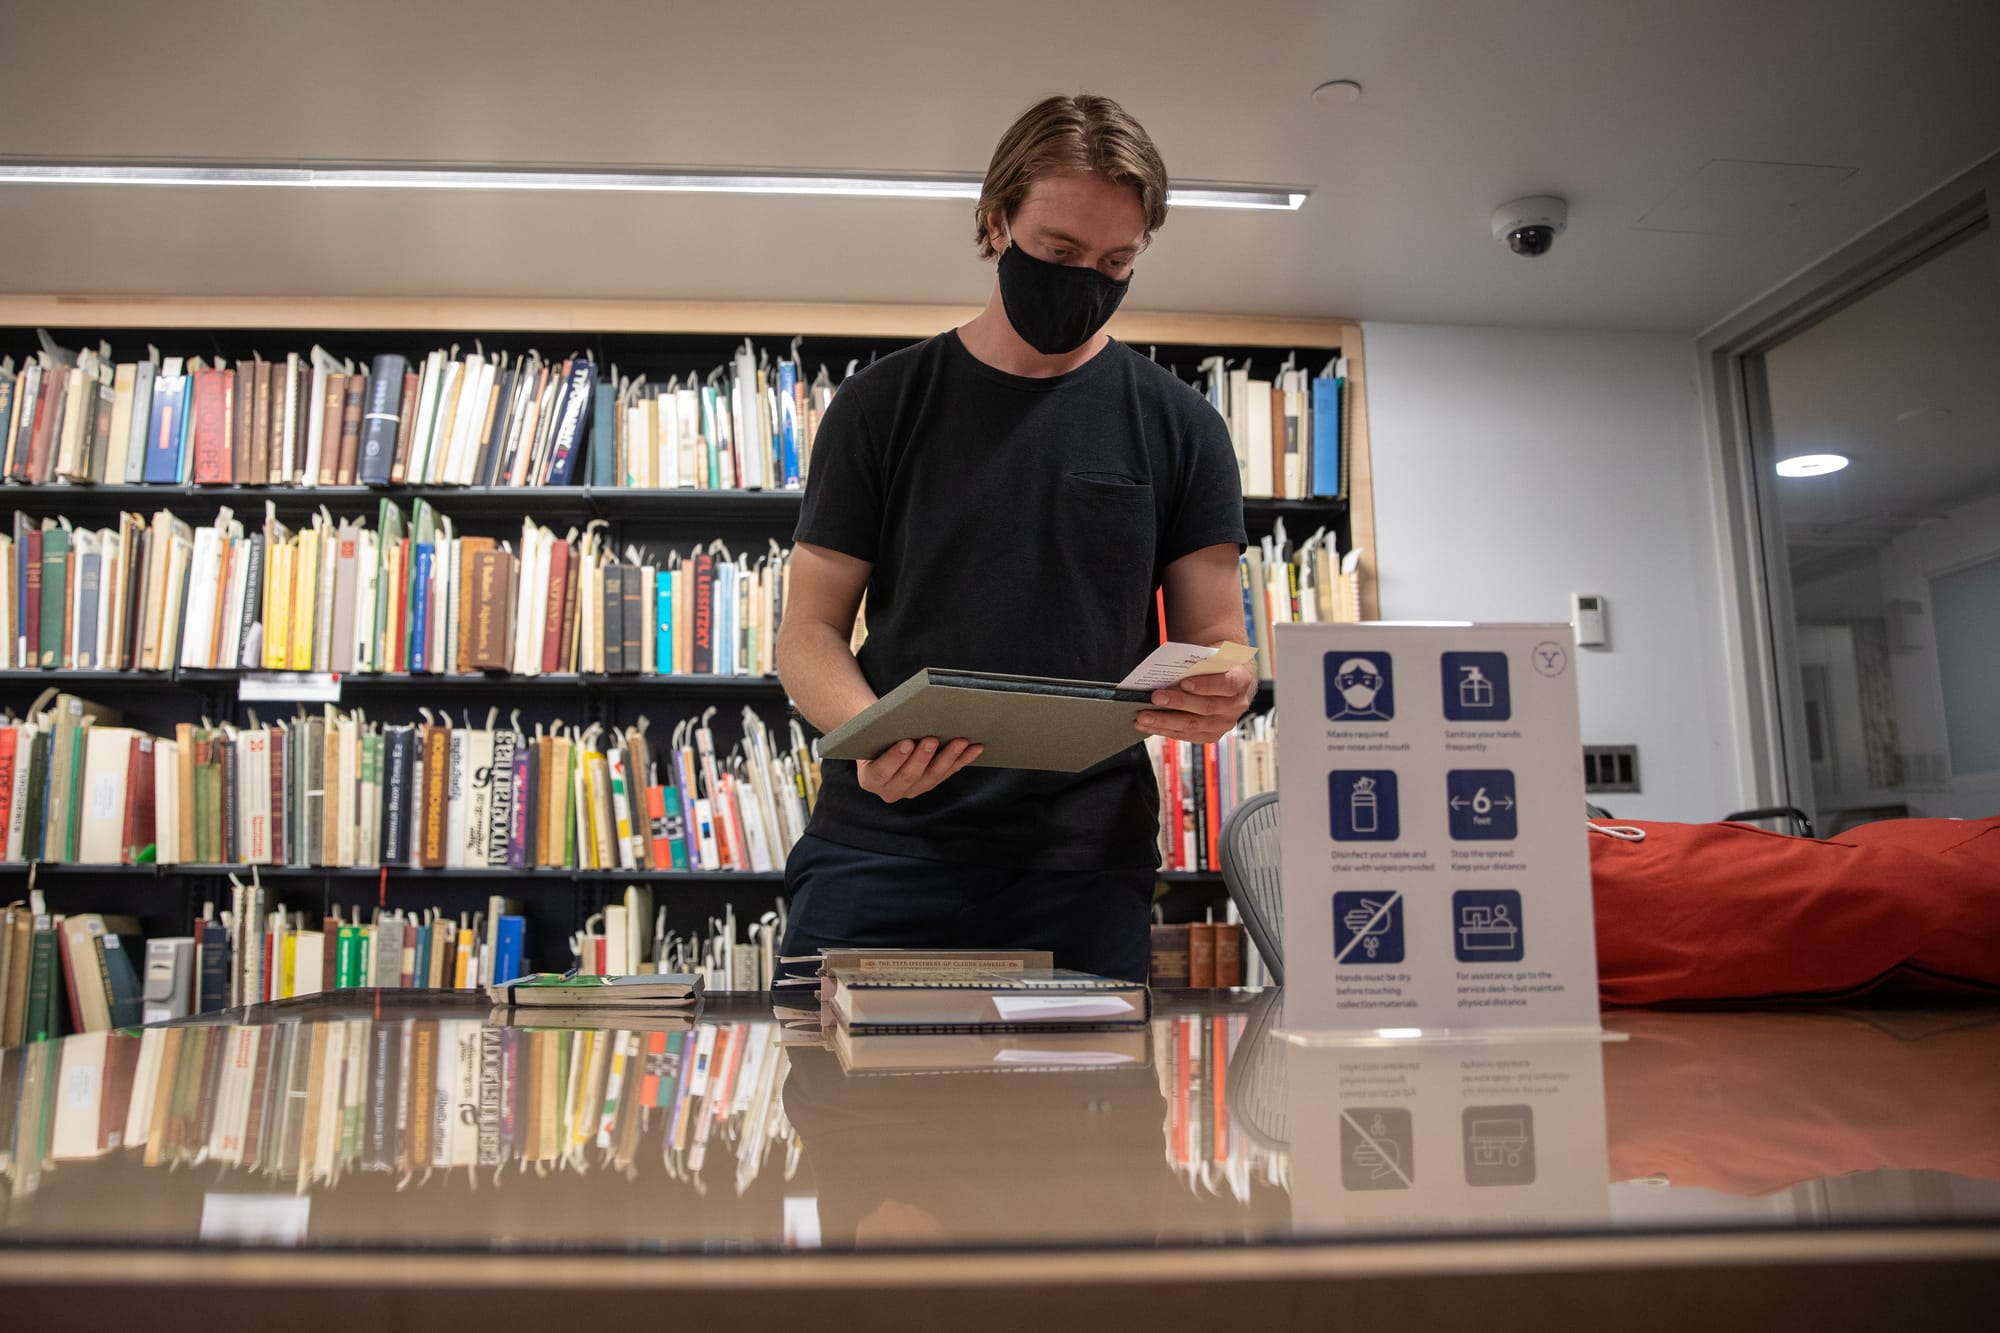 A masked student stands in front of book shelves and behind a table stacked with library books. Photo by Andrew Hurley